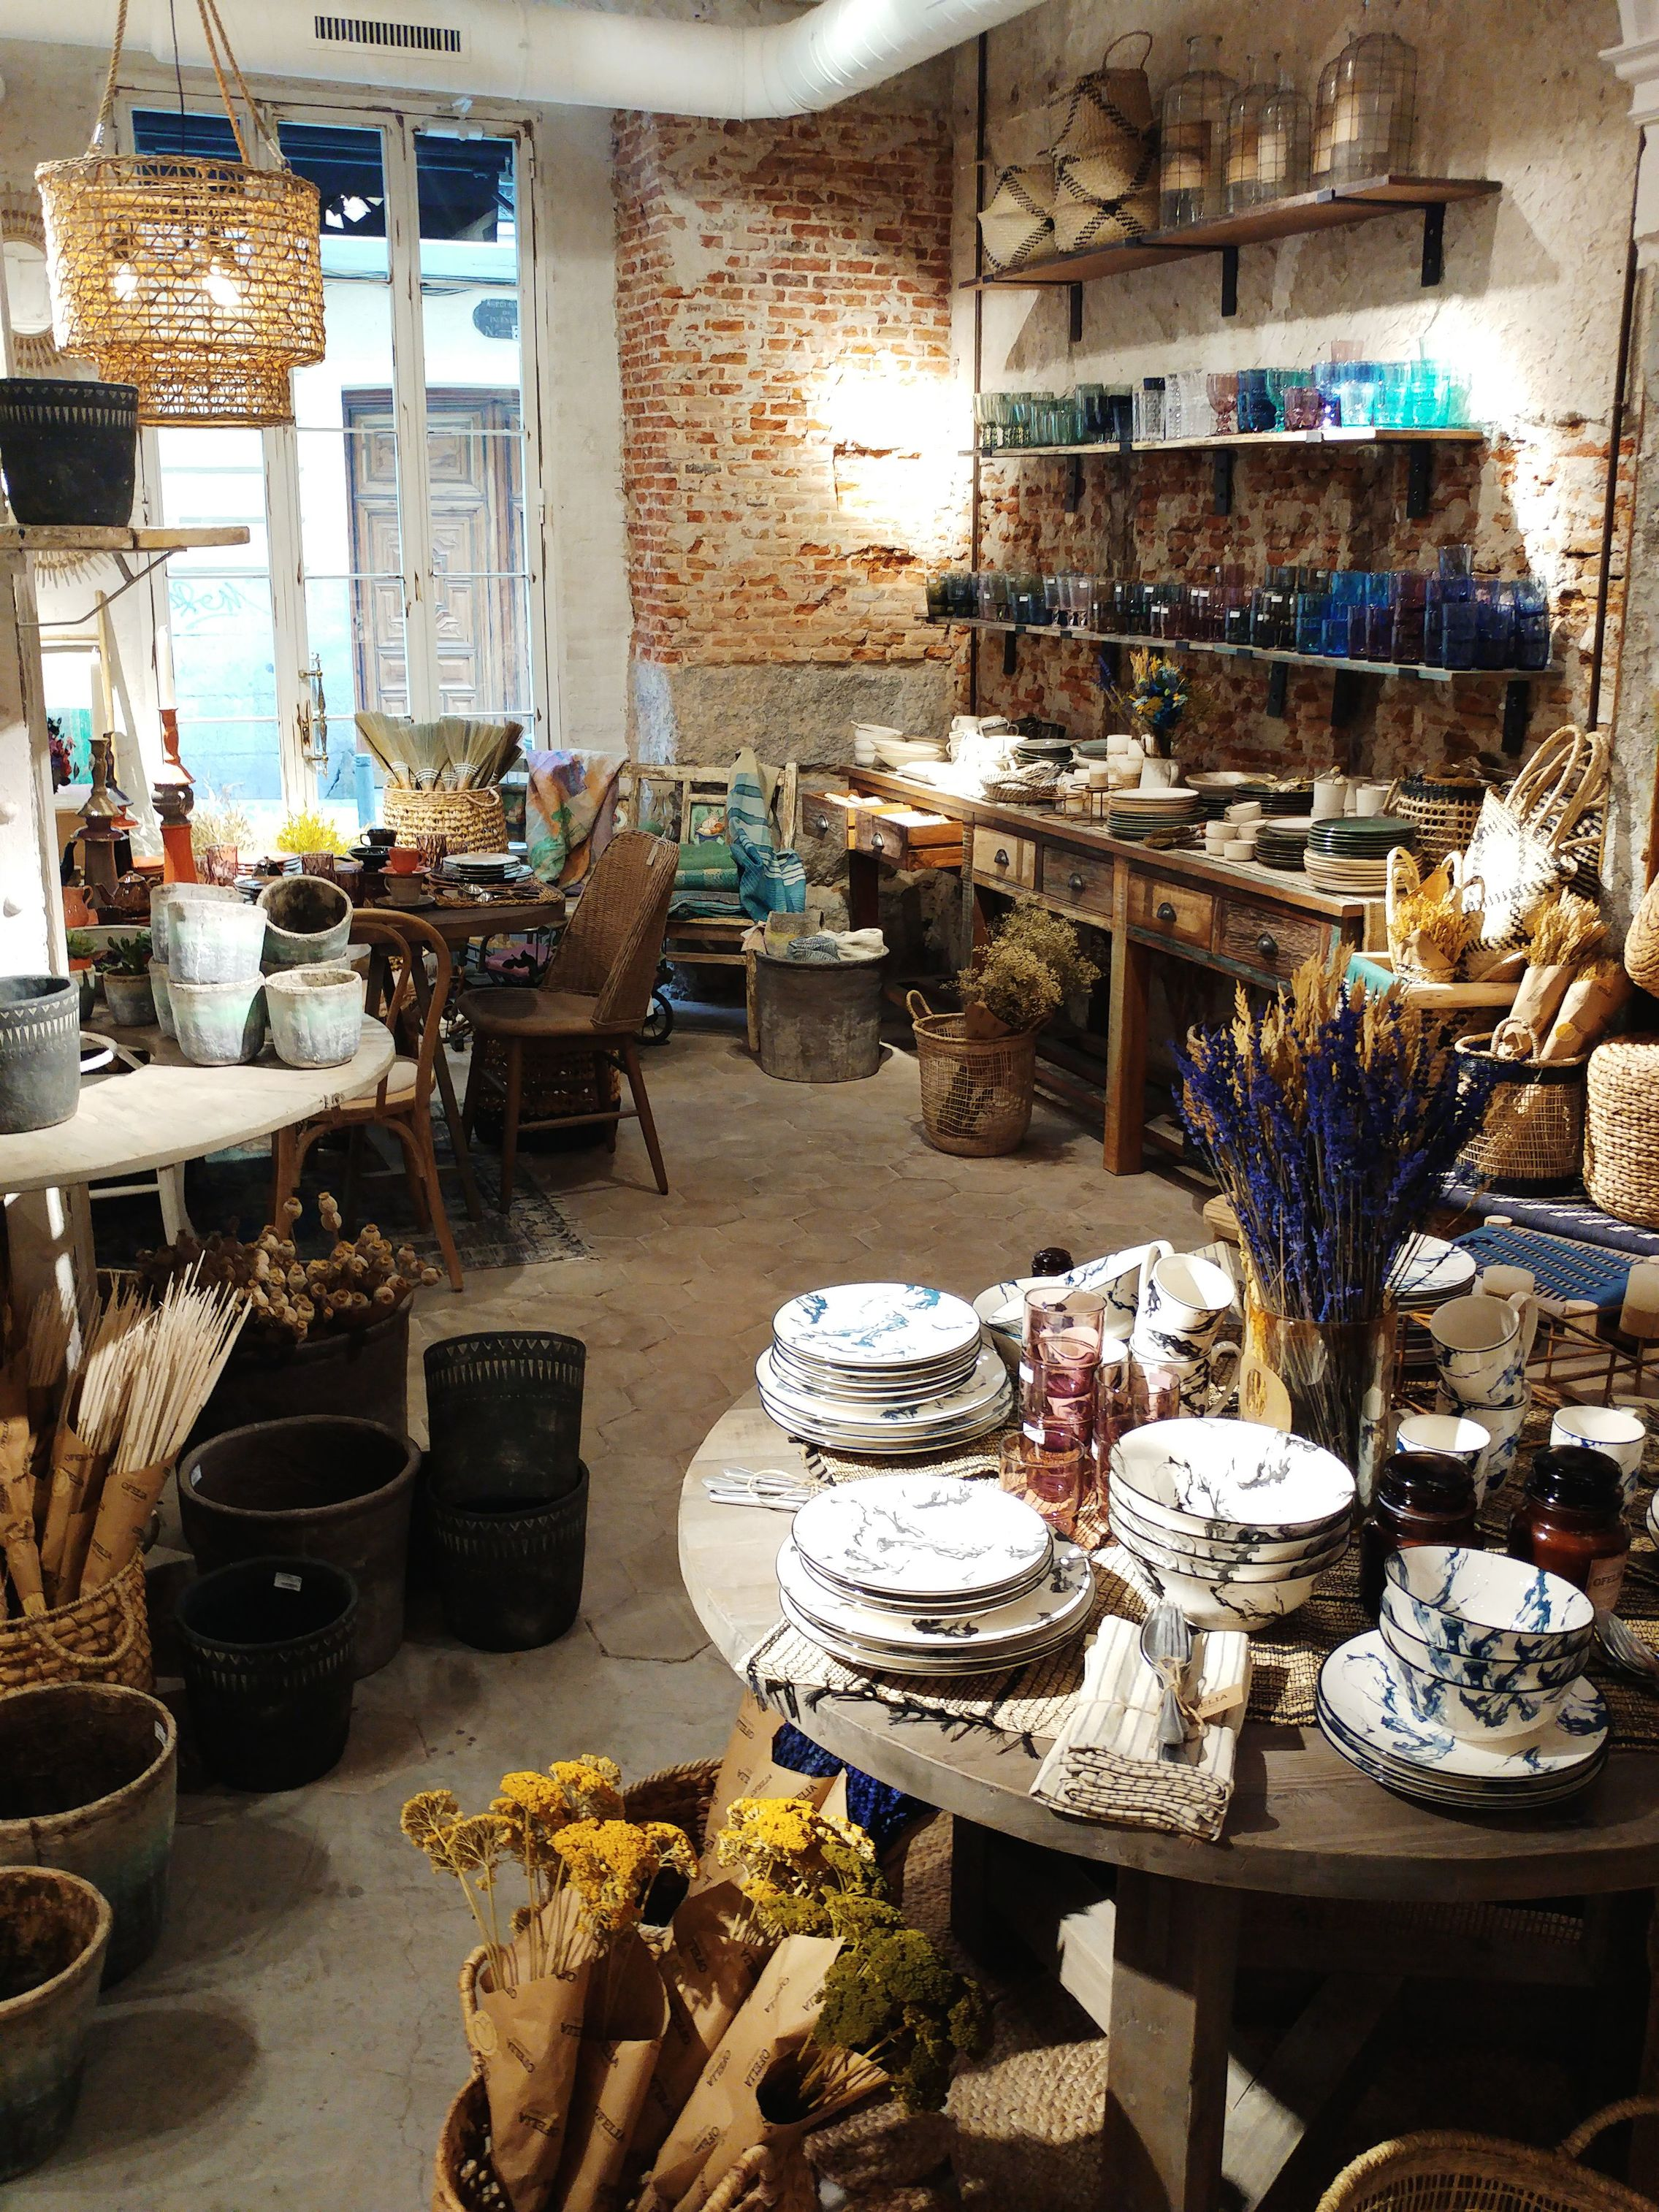 Ofelia vintage home decor shop in Madrid Chueca